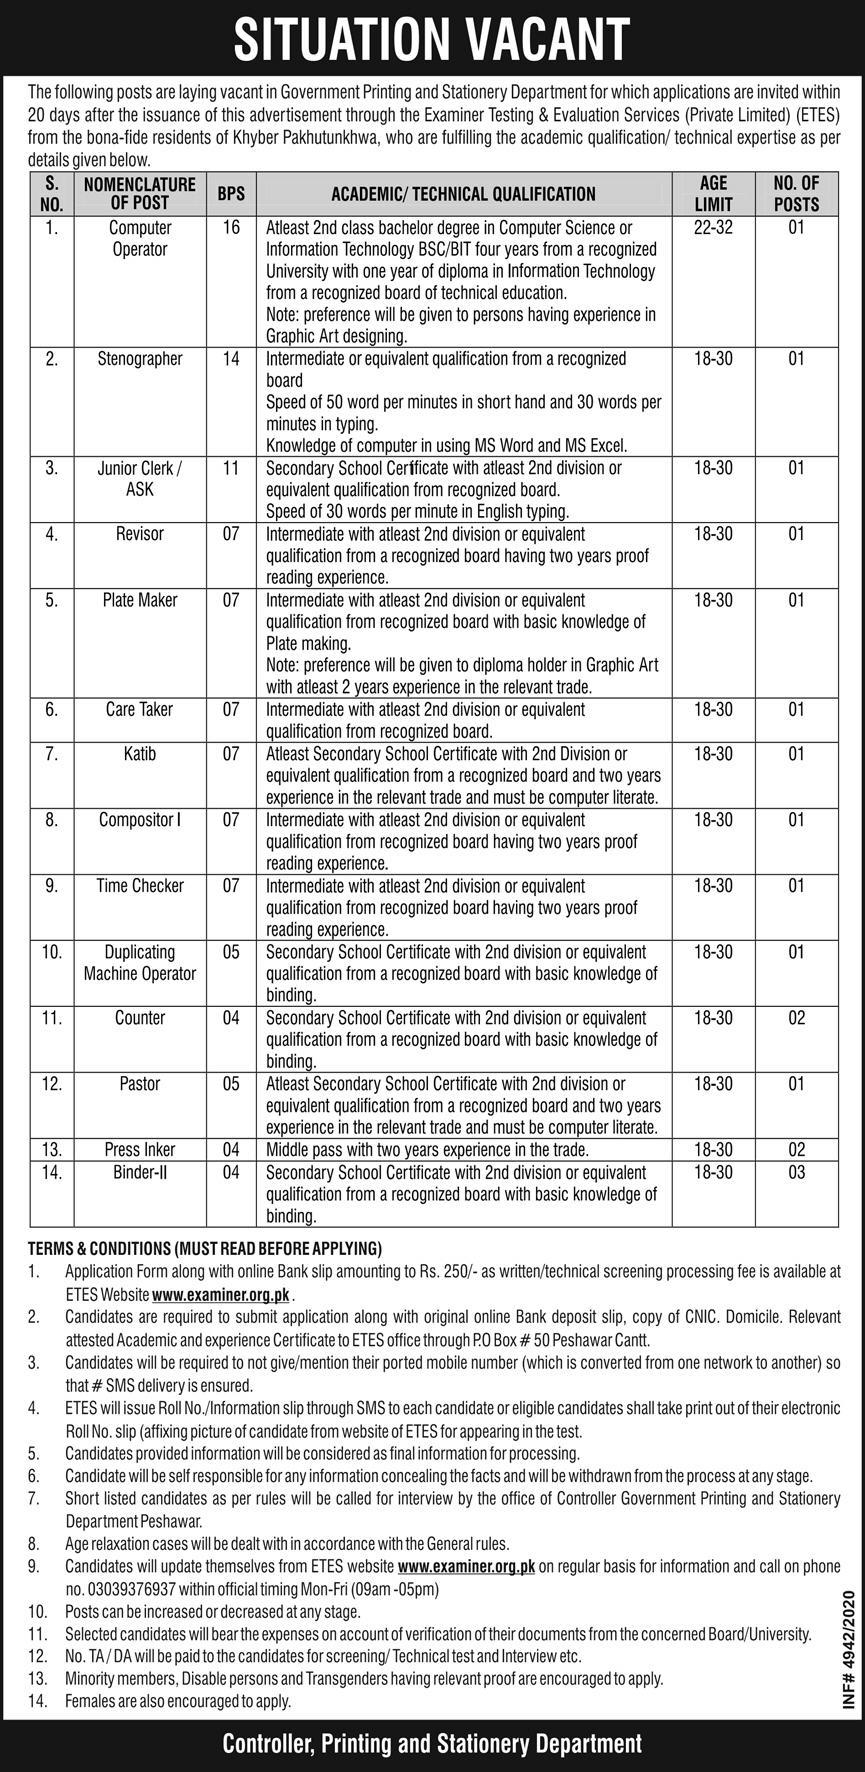 Govt Printing Press Stationery Department Jobs ETES Result